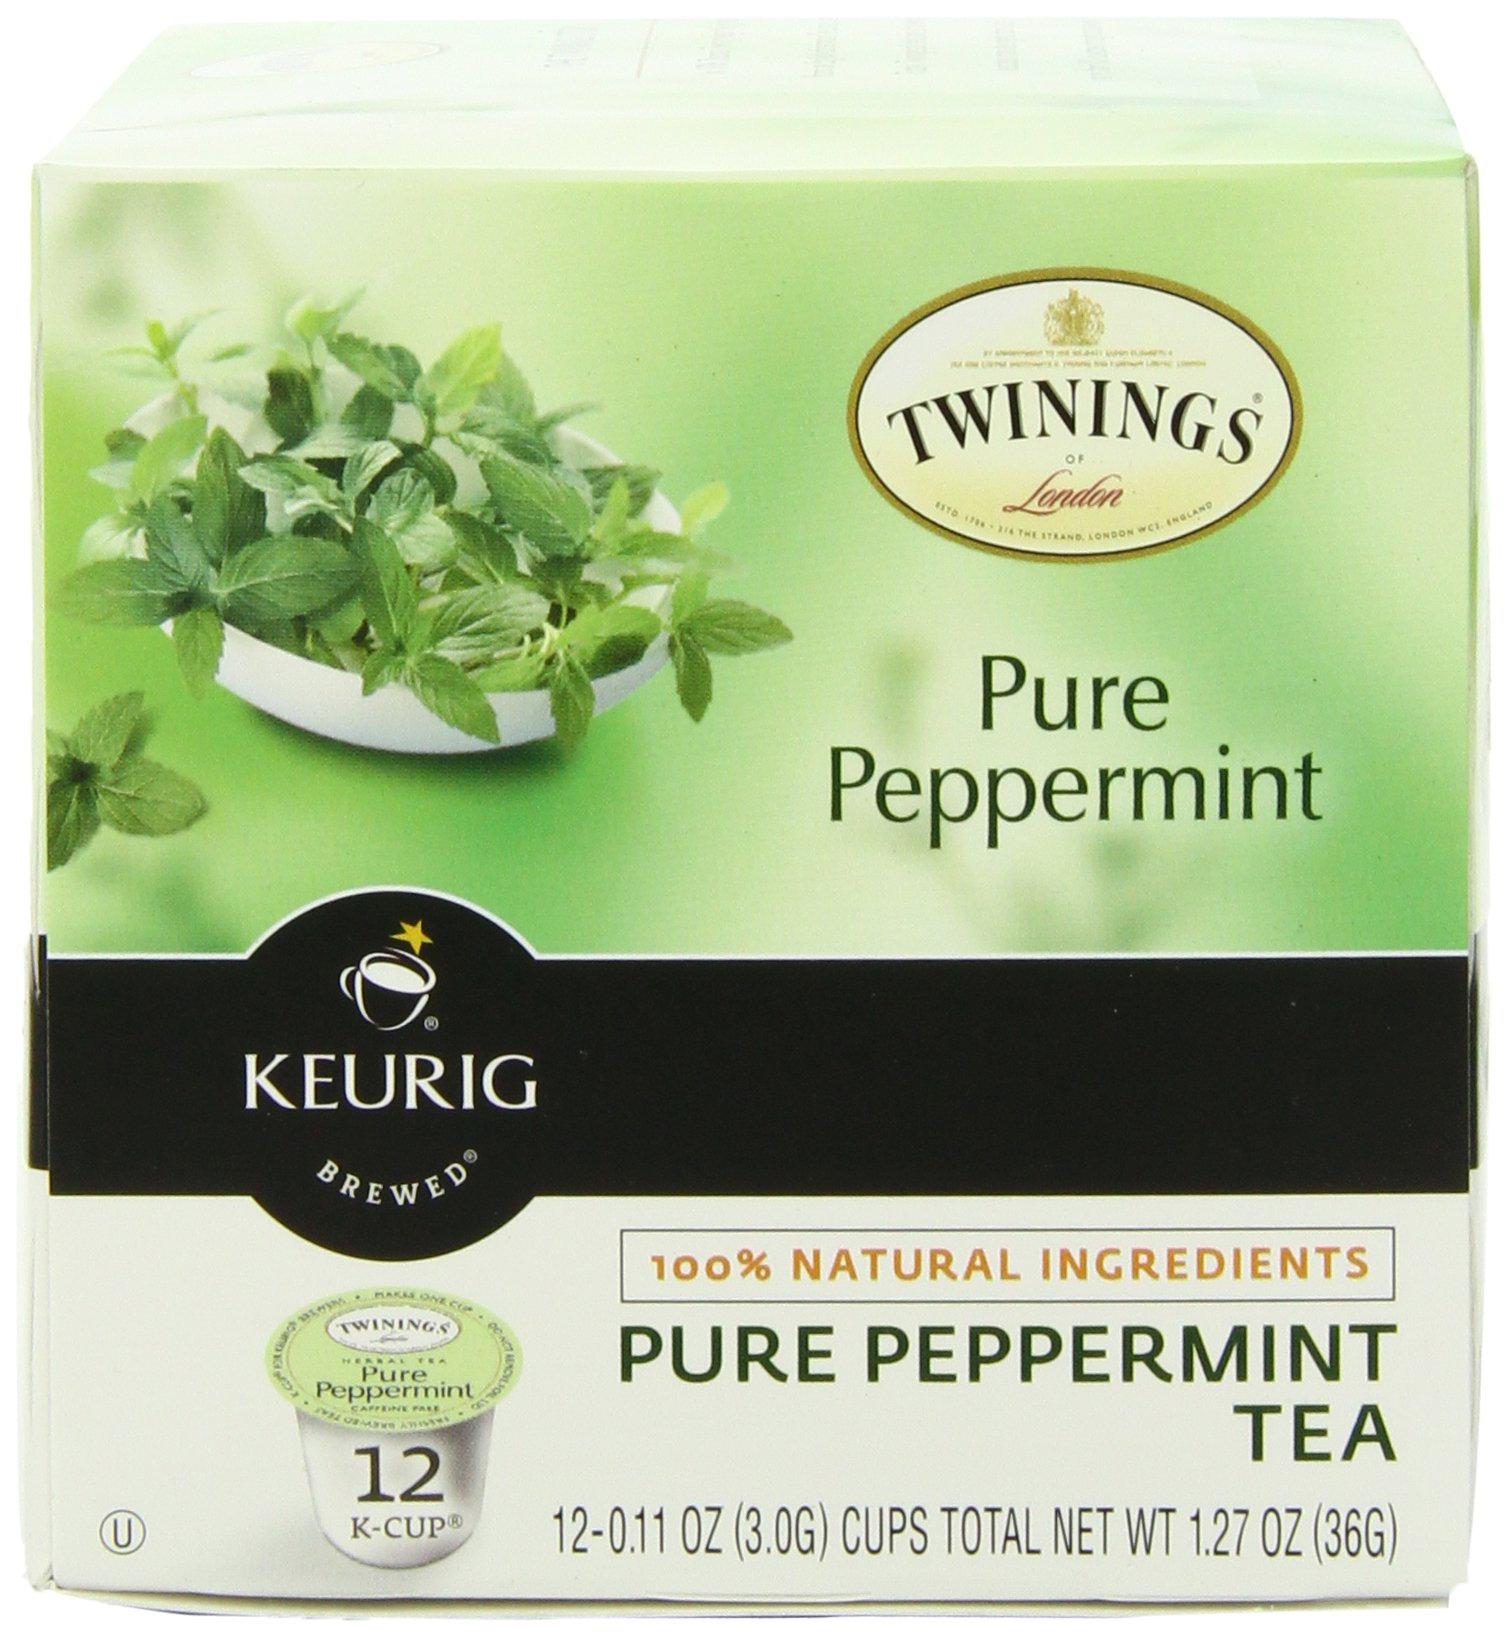 Twinings of London Pure Peppermint Tea K-Cups for Keurig, 12 Count (Pack of 6) by Twinings (Image #1)